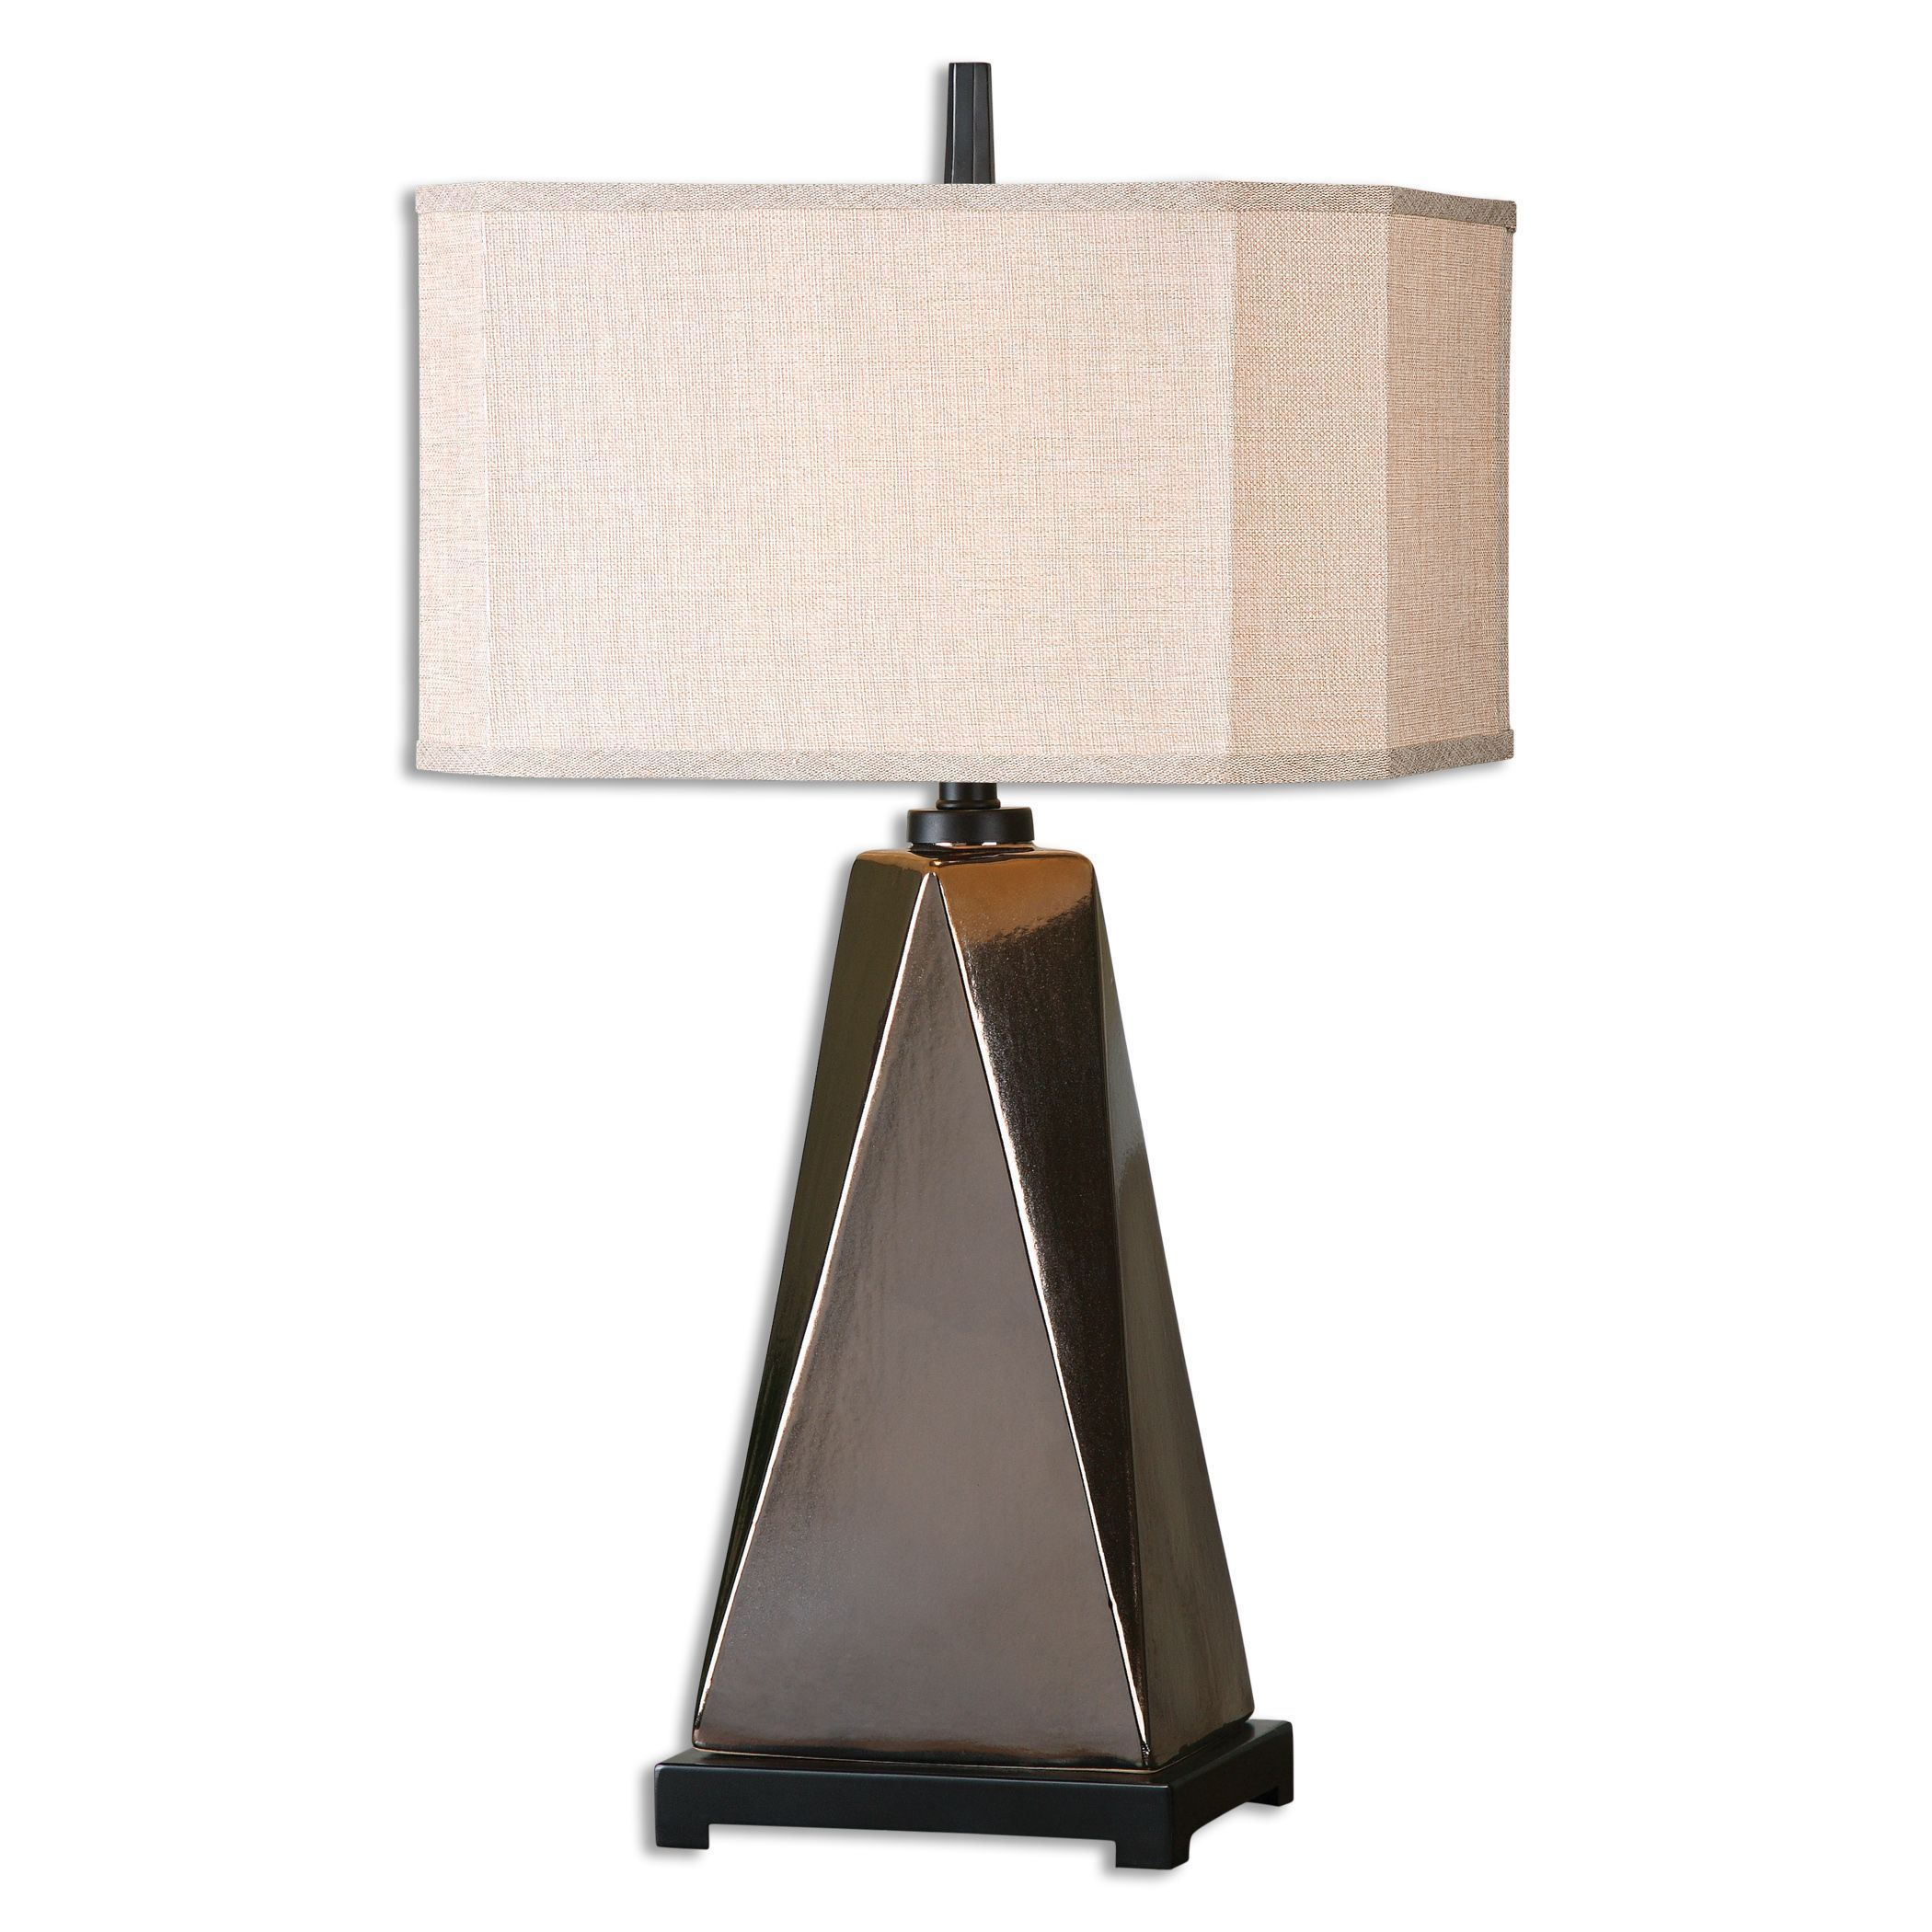 Uttermost lighting provides a wide selection of quality and stylish products at a reasonable price shop uttermost lightings broad range of light fixtures